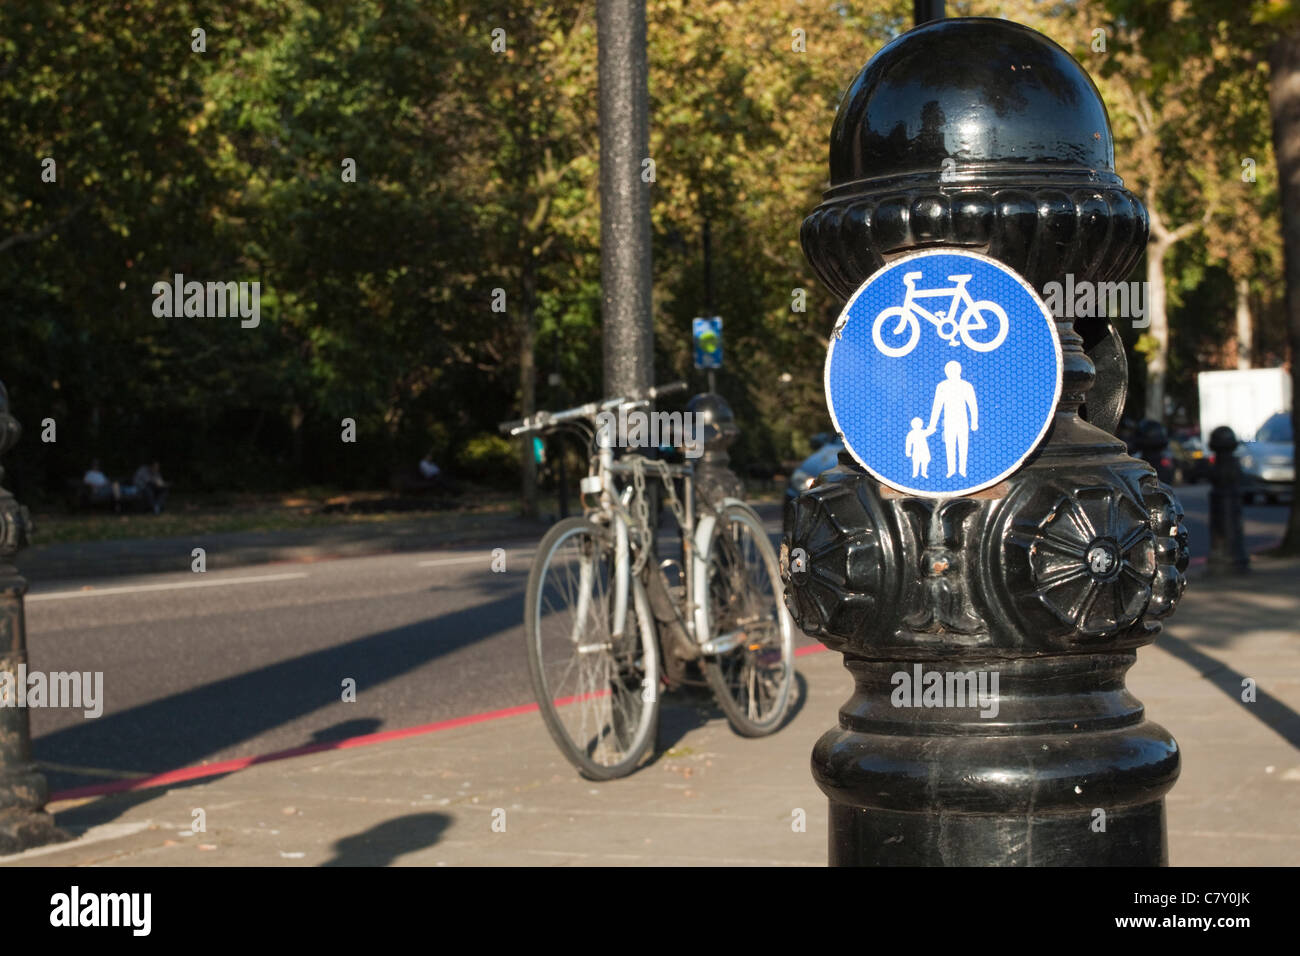 Cycle path signpost on the Chelsea Embankment, London, England, UK - Stock Image